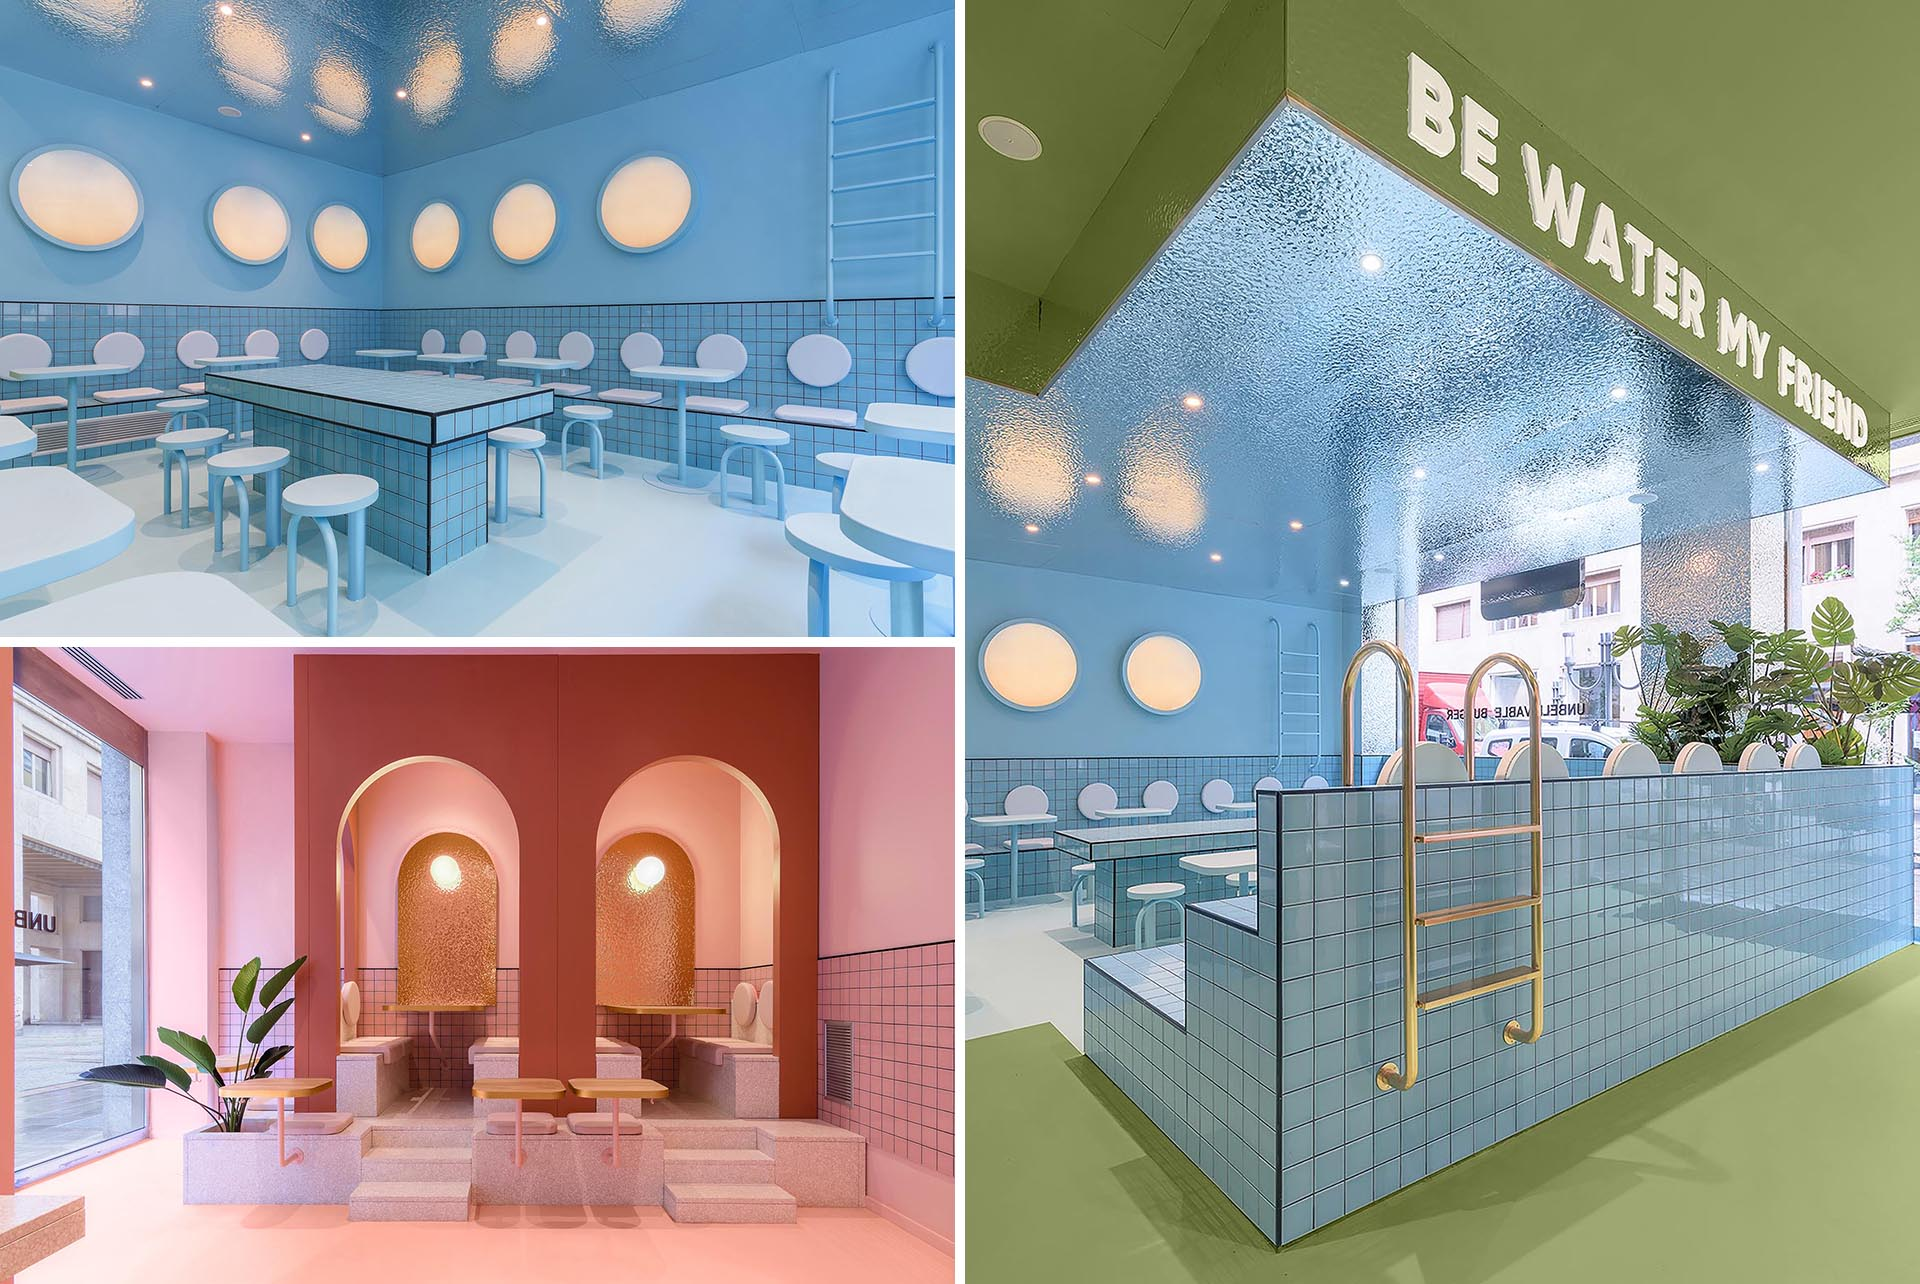 A modern restaurant interior with three color zones and inspirations from a swimming pool.